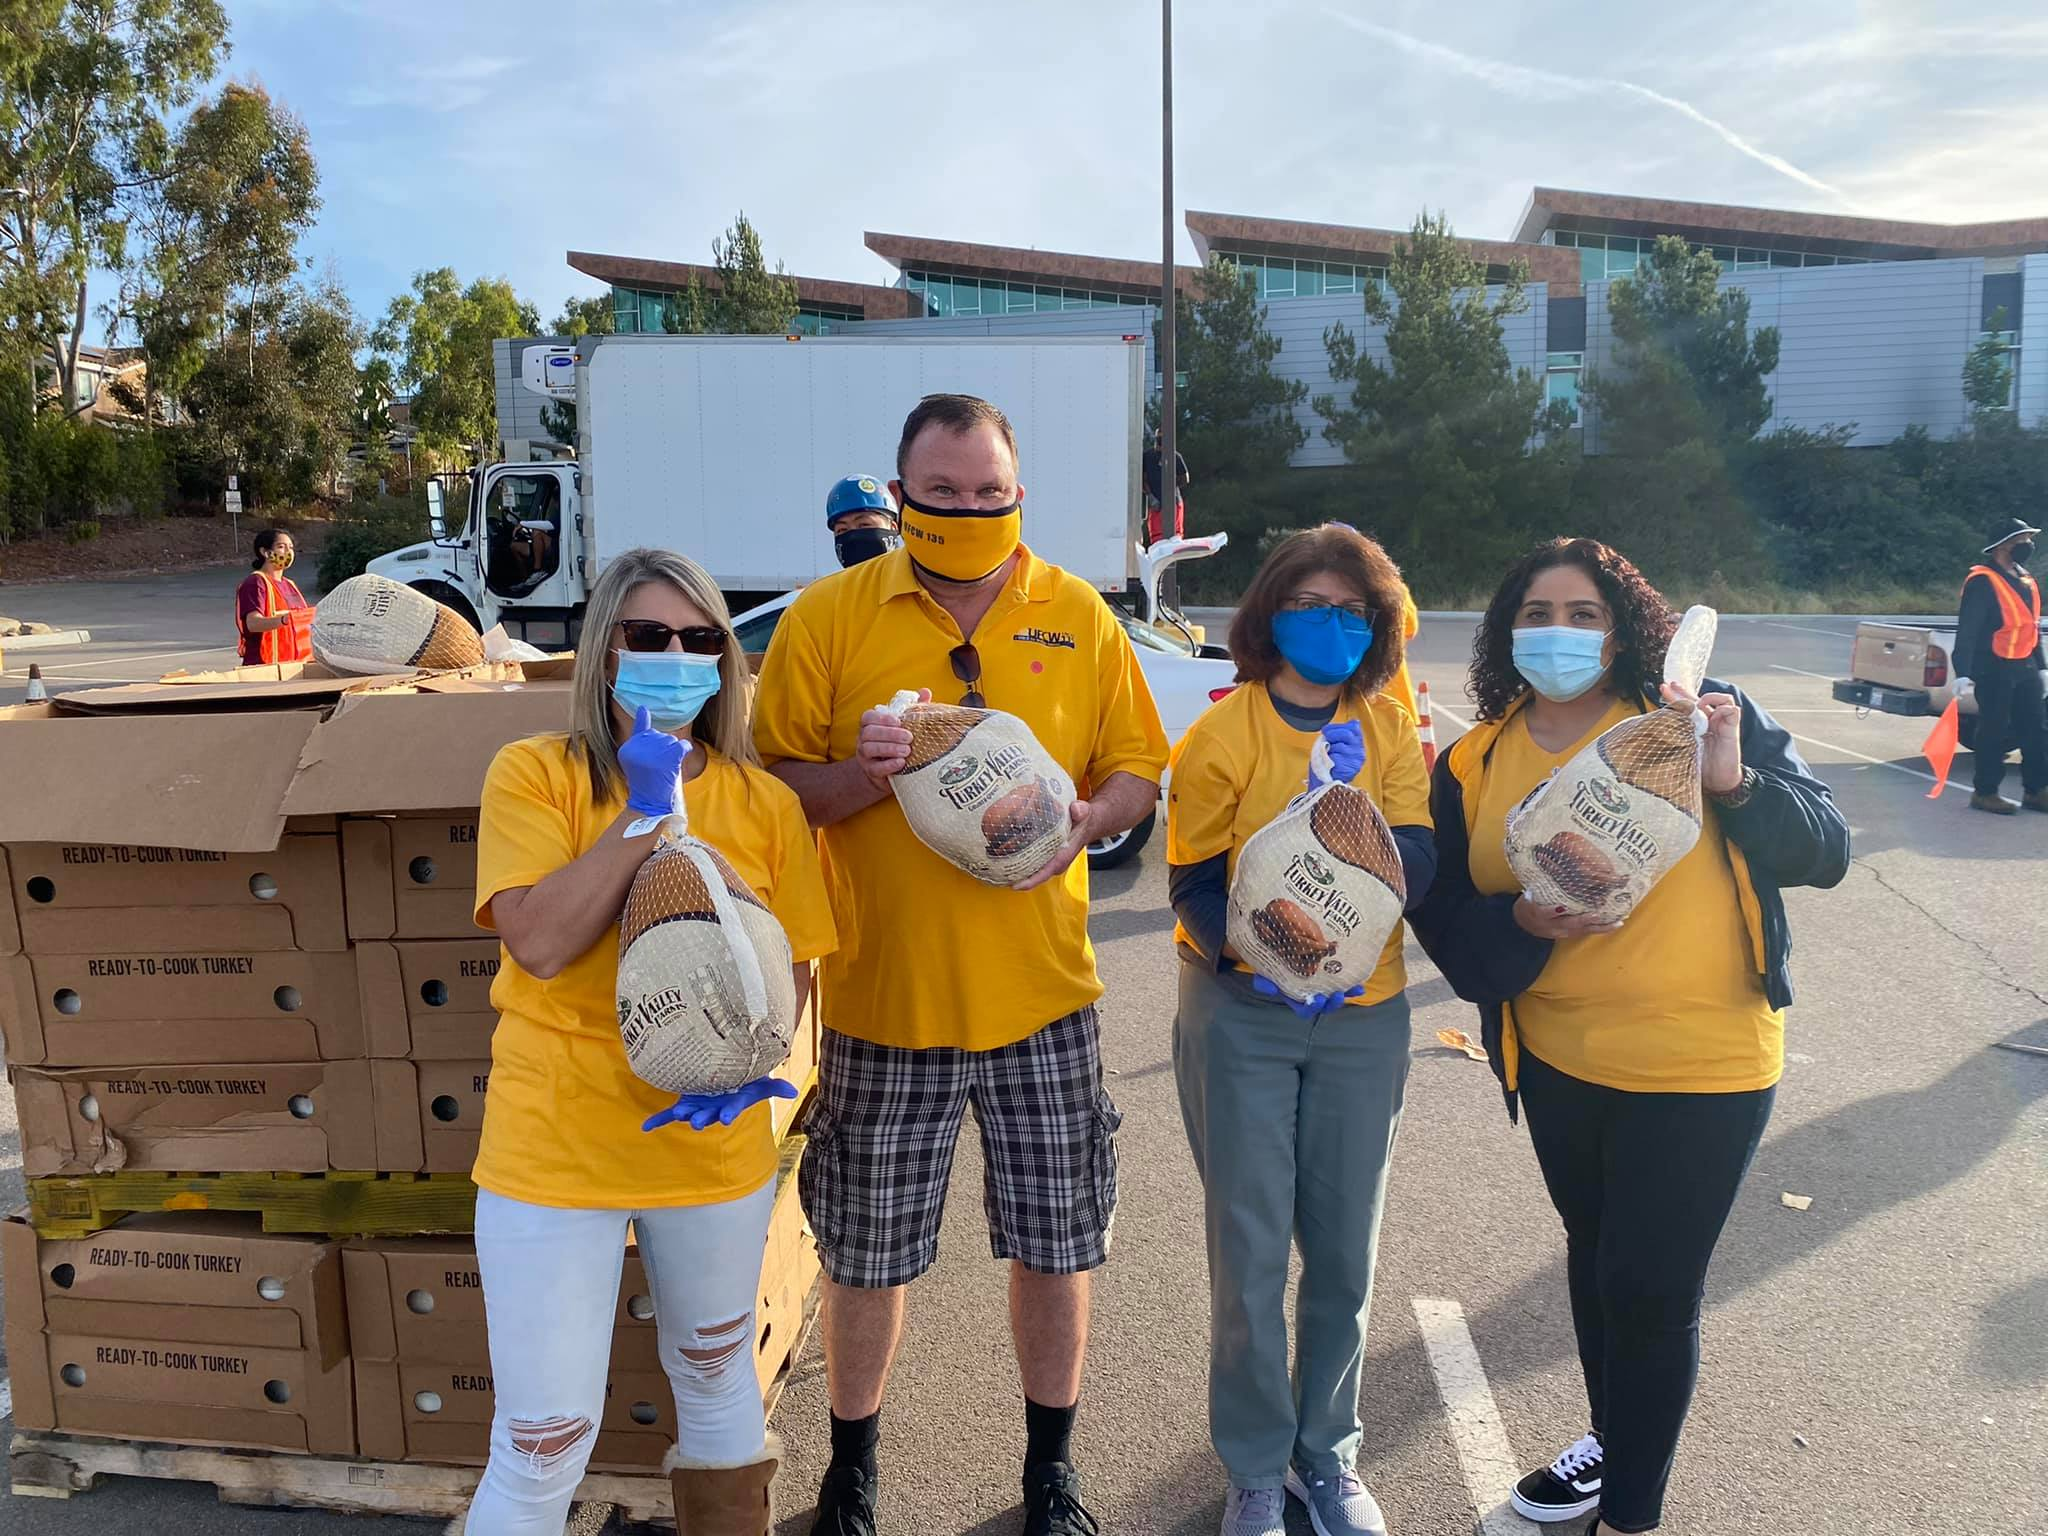 Palomar employees hand out frozen chicken at Palomar food drive in December 2020.